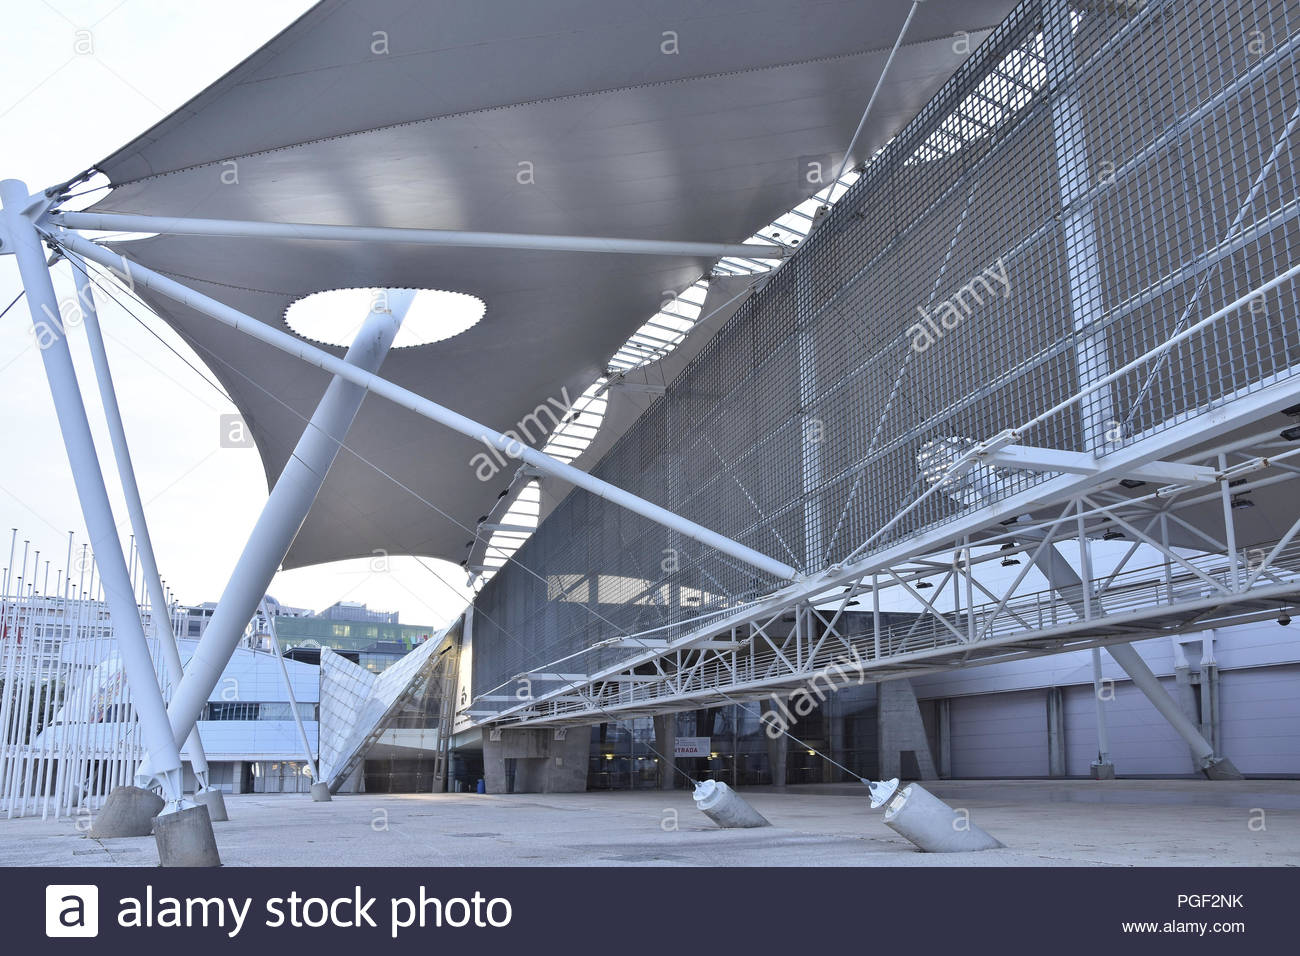 Fabric Canopy High Resolution Stock Photography And Images Alamy